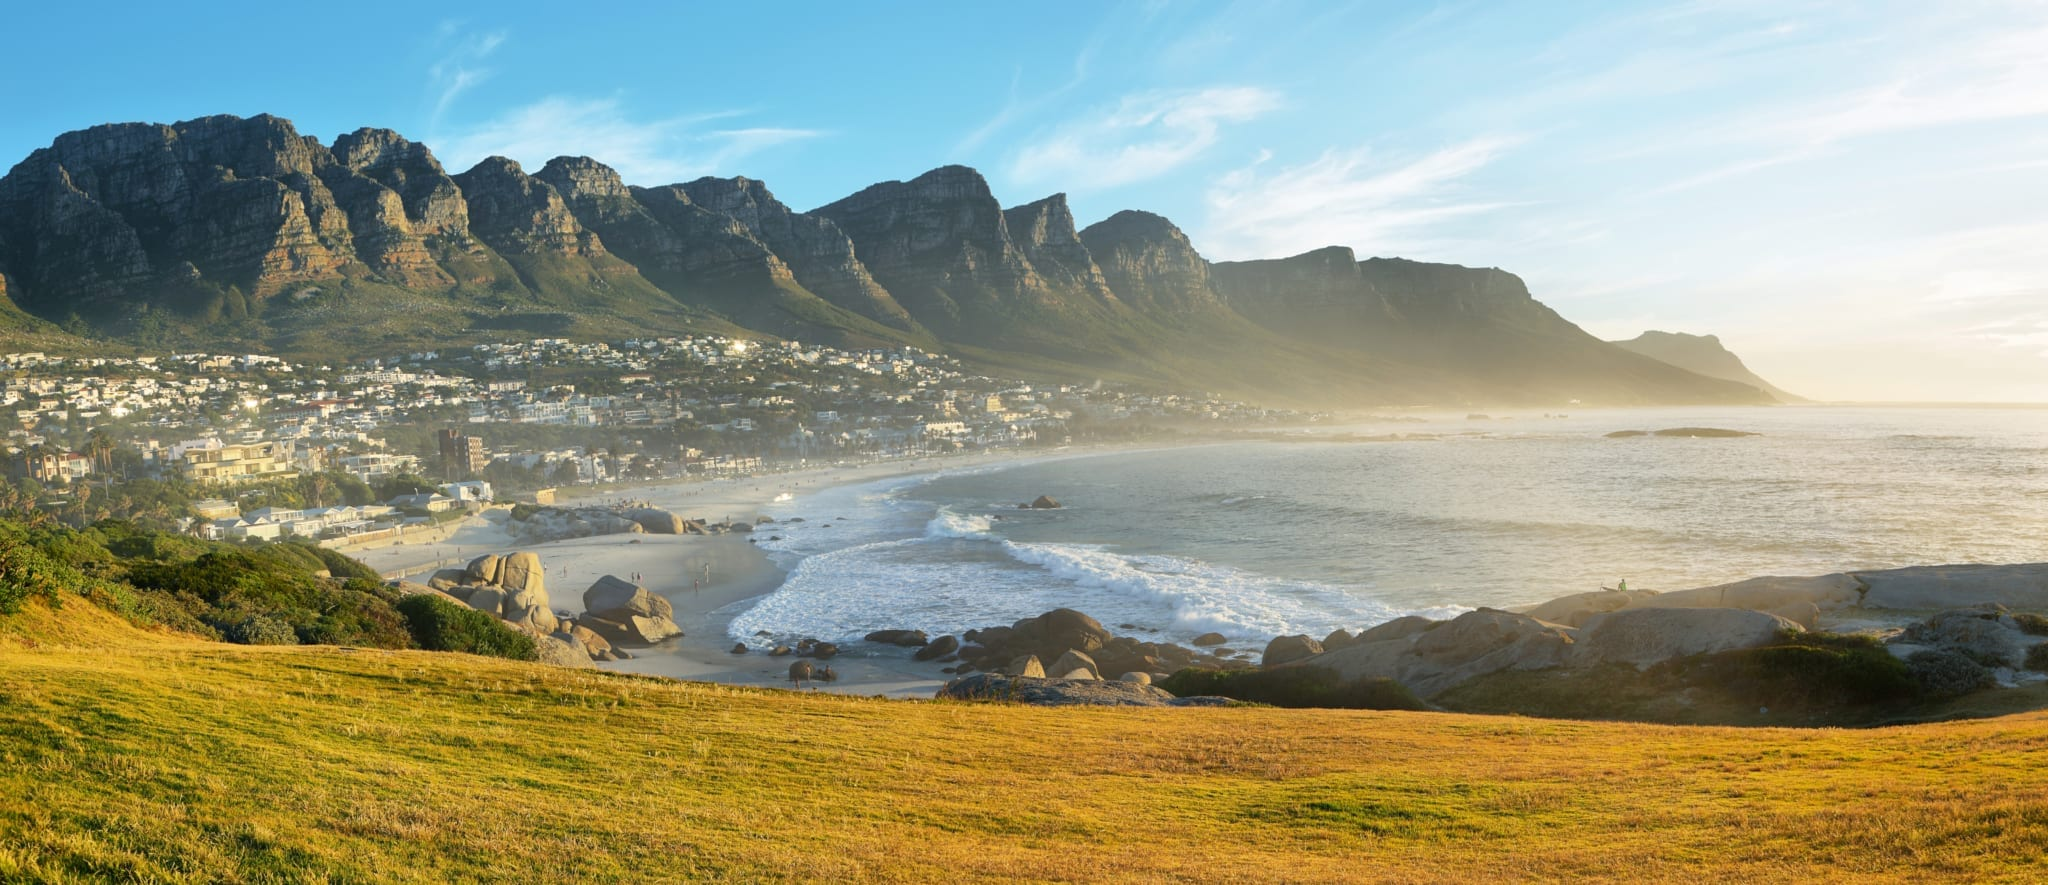 Camps Bay Beach in Cape Town, South Africa, with the Twelve Apostles in the background.